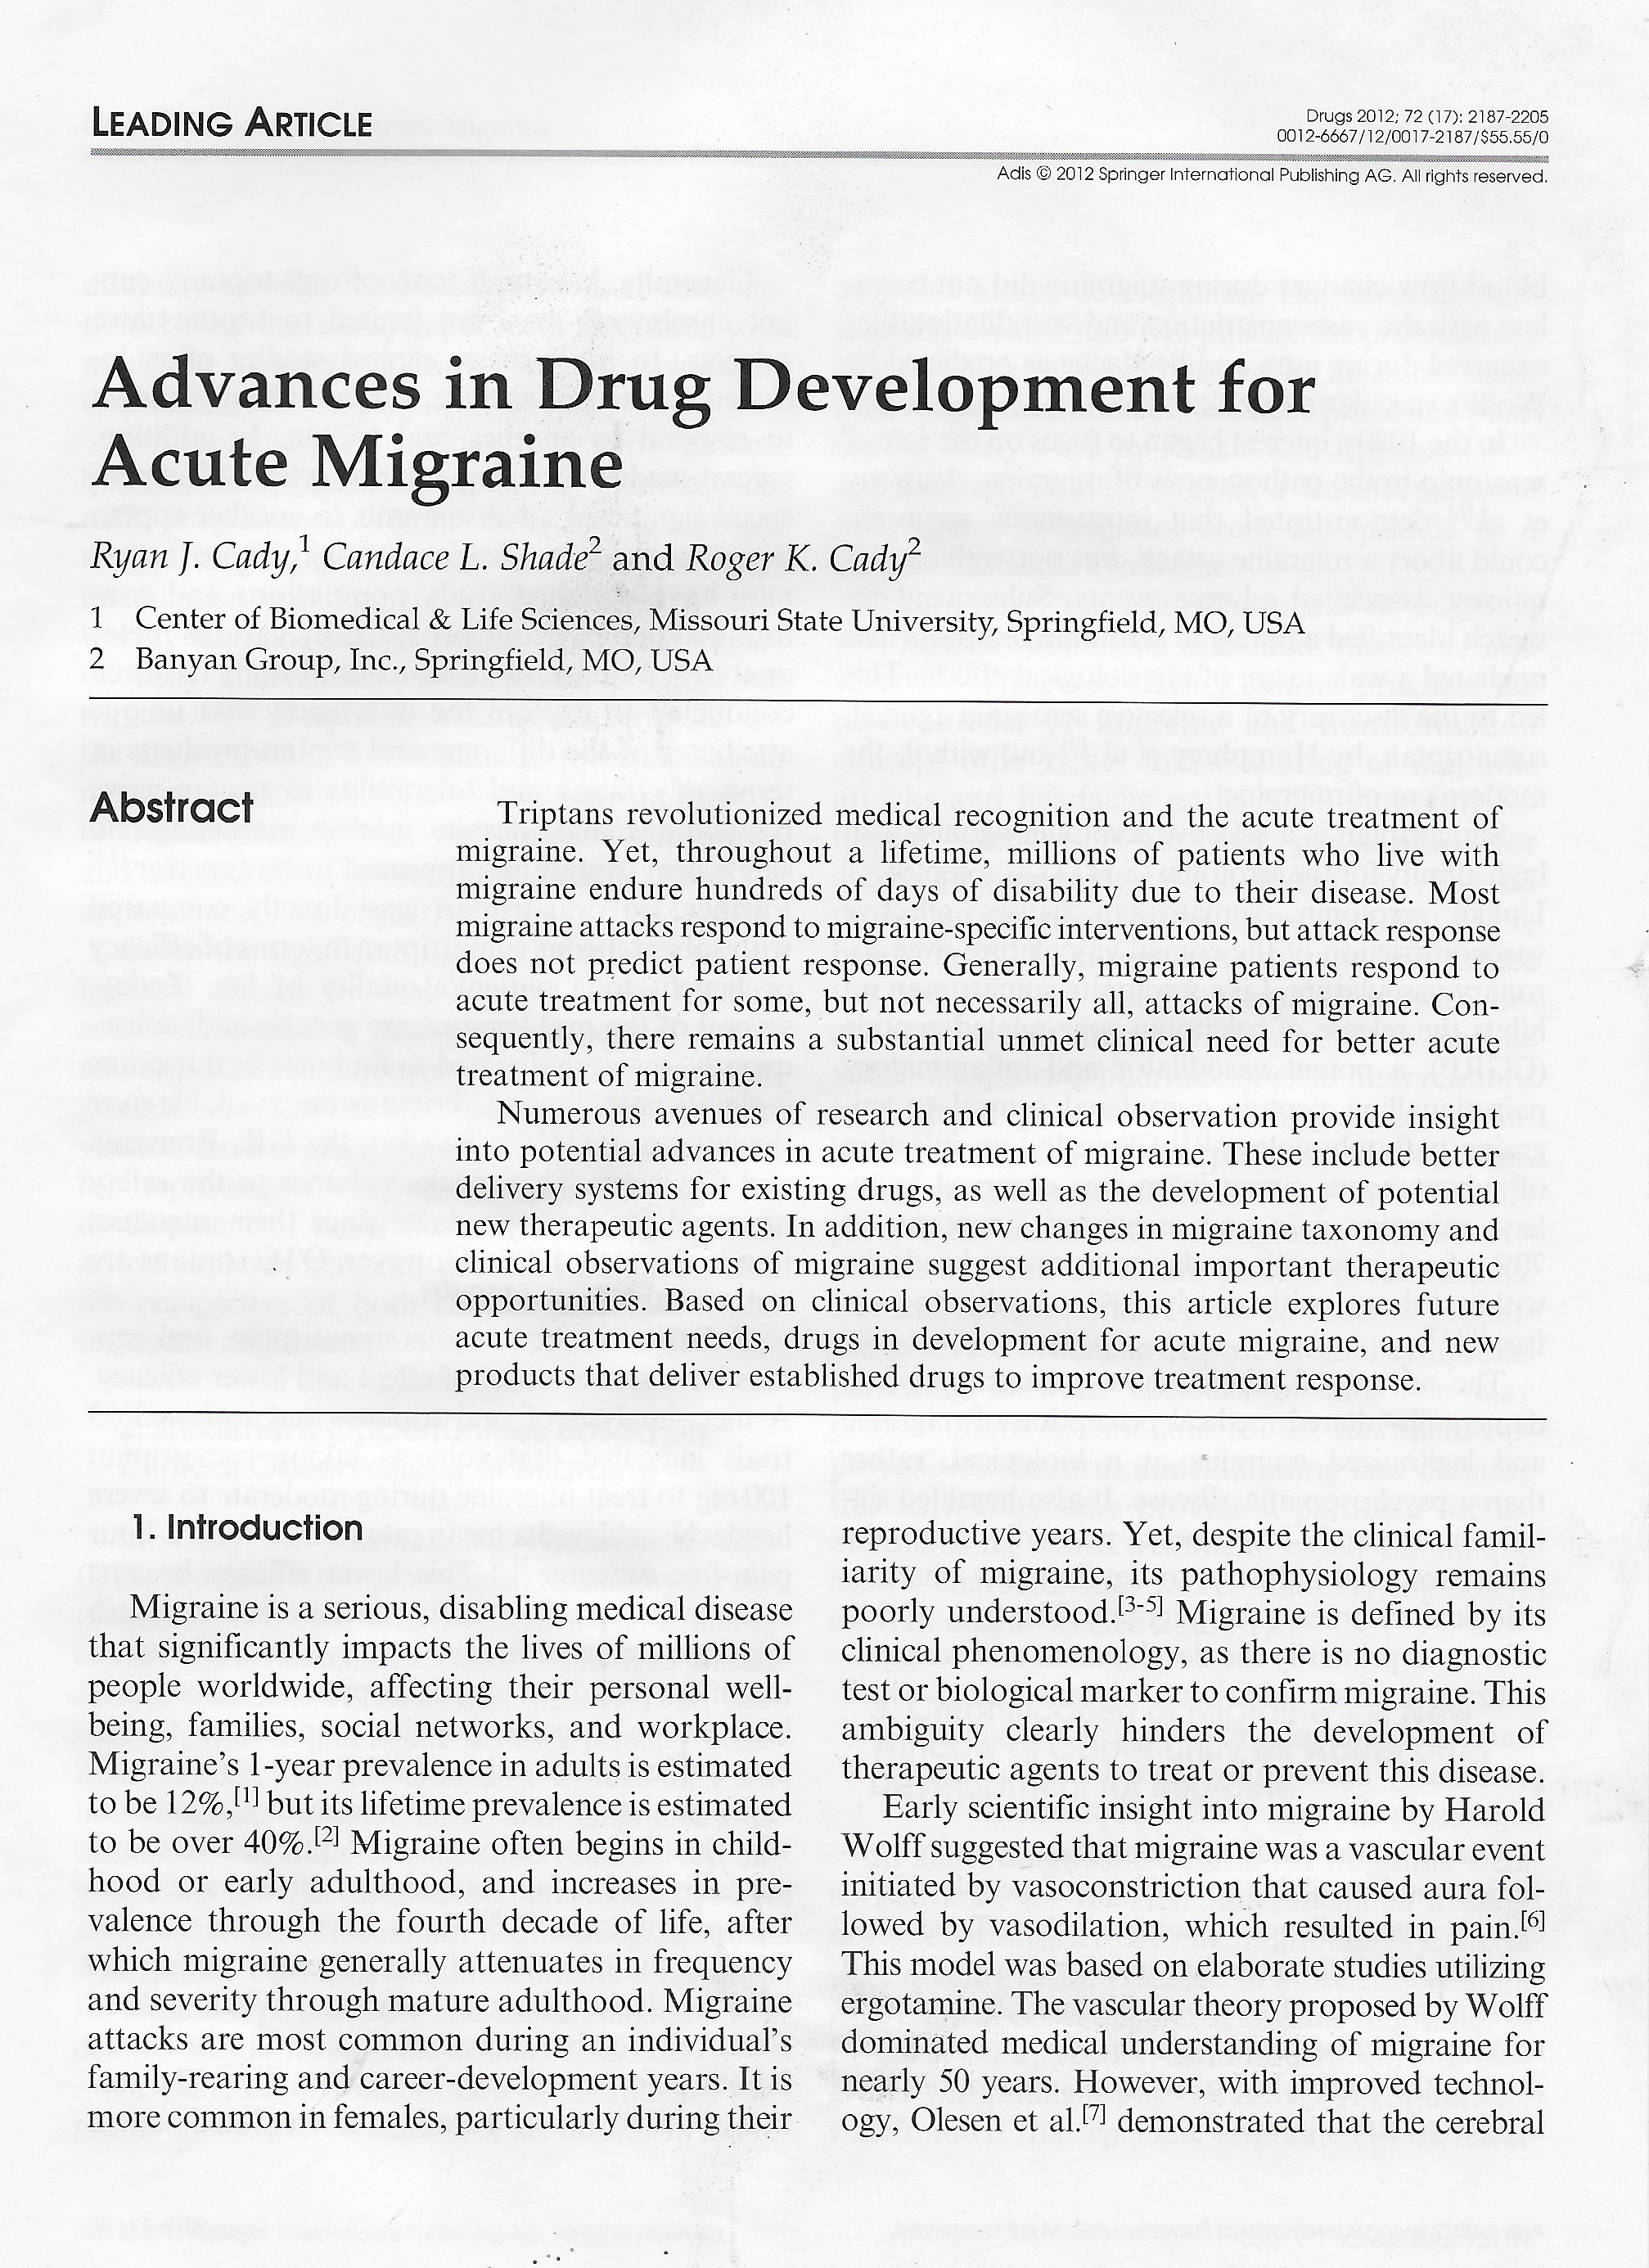 Drugs Article Support (page 1).jpg